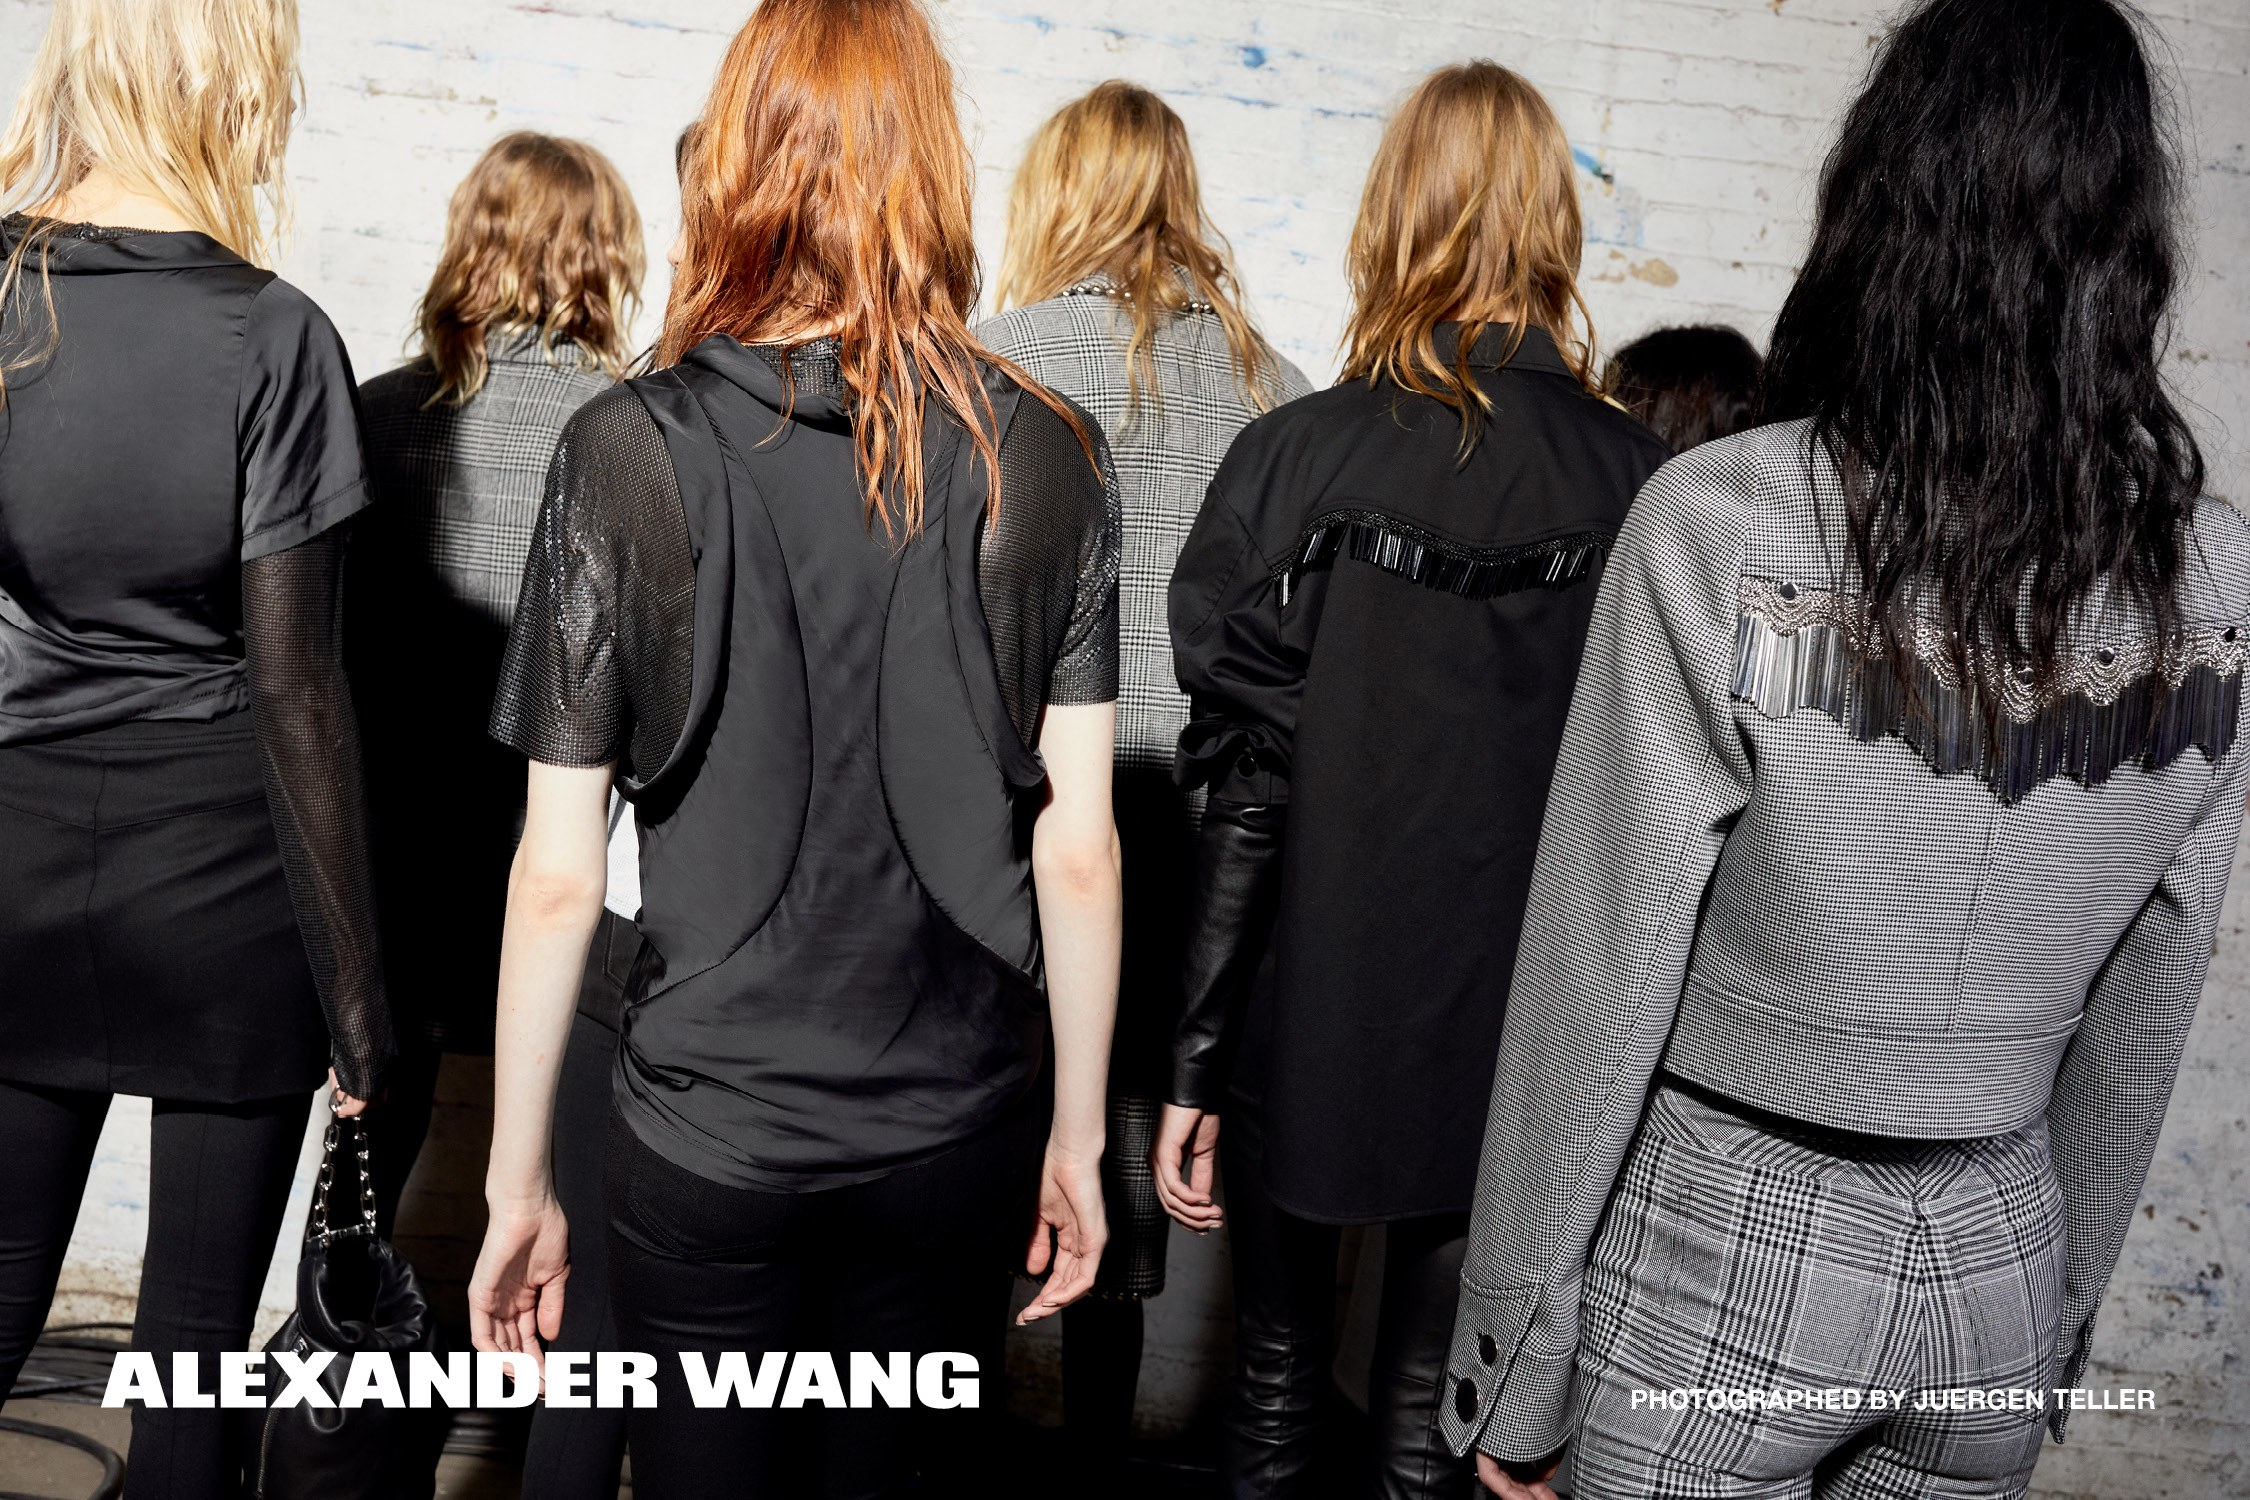 Alexander Wang Fall 2017 #NOAFTERPARTY Ad Campaign